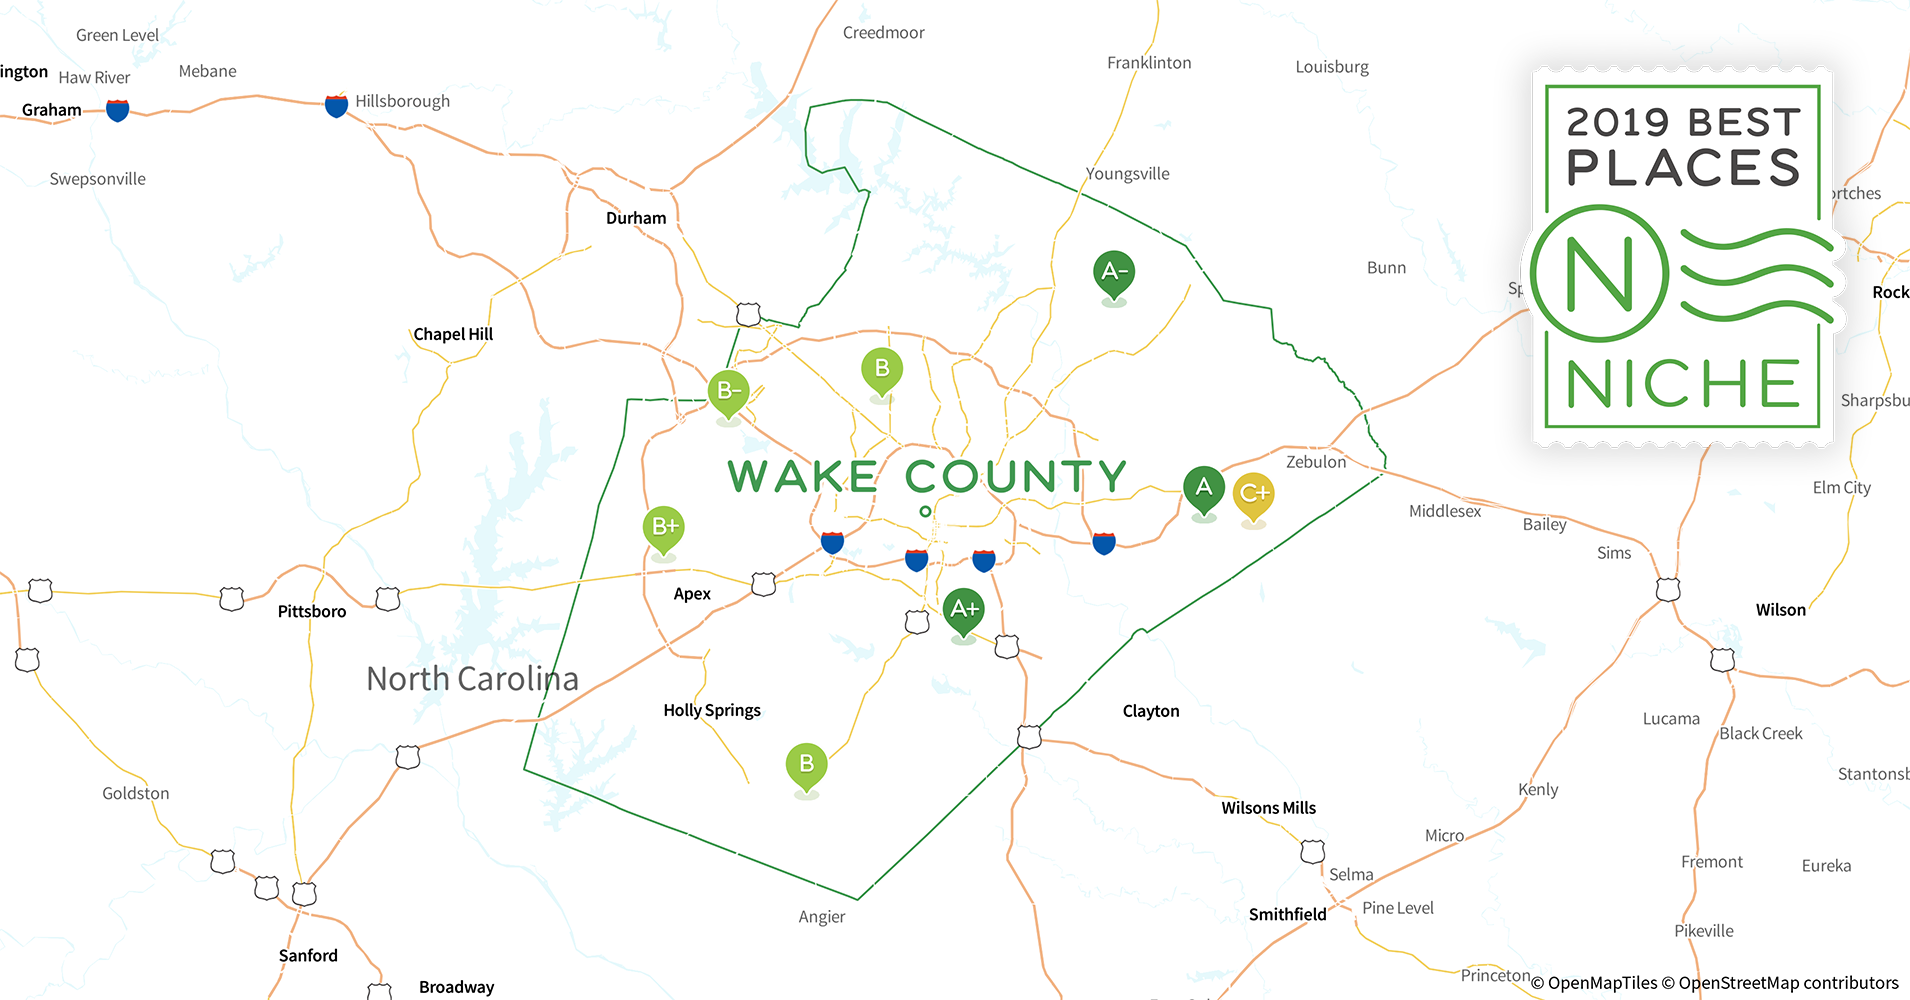 2019 Best Places to Live in Wake County, NC - Niche Zip Code Map Wake County Nc on harris county houston zip code map, wake county zip code map pdf, ocean county nj zip code map, washoe county nv zip code map, burlington county nj zip code map, monmouth county nj zip code map, alameda county ca zip code map, frederick county md zip code map, broward county fl zip code map, martin county florida zip code map, maricopa county az zip code map, fairfield county ct zip code map, wake county election districts map, howard county md zip code map, montgomery county md zip code map, dauphin county pa zip code map, clark county nv zip code map, frederick county va zip code map, fulton county ga zip code map,